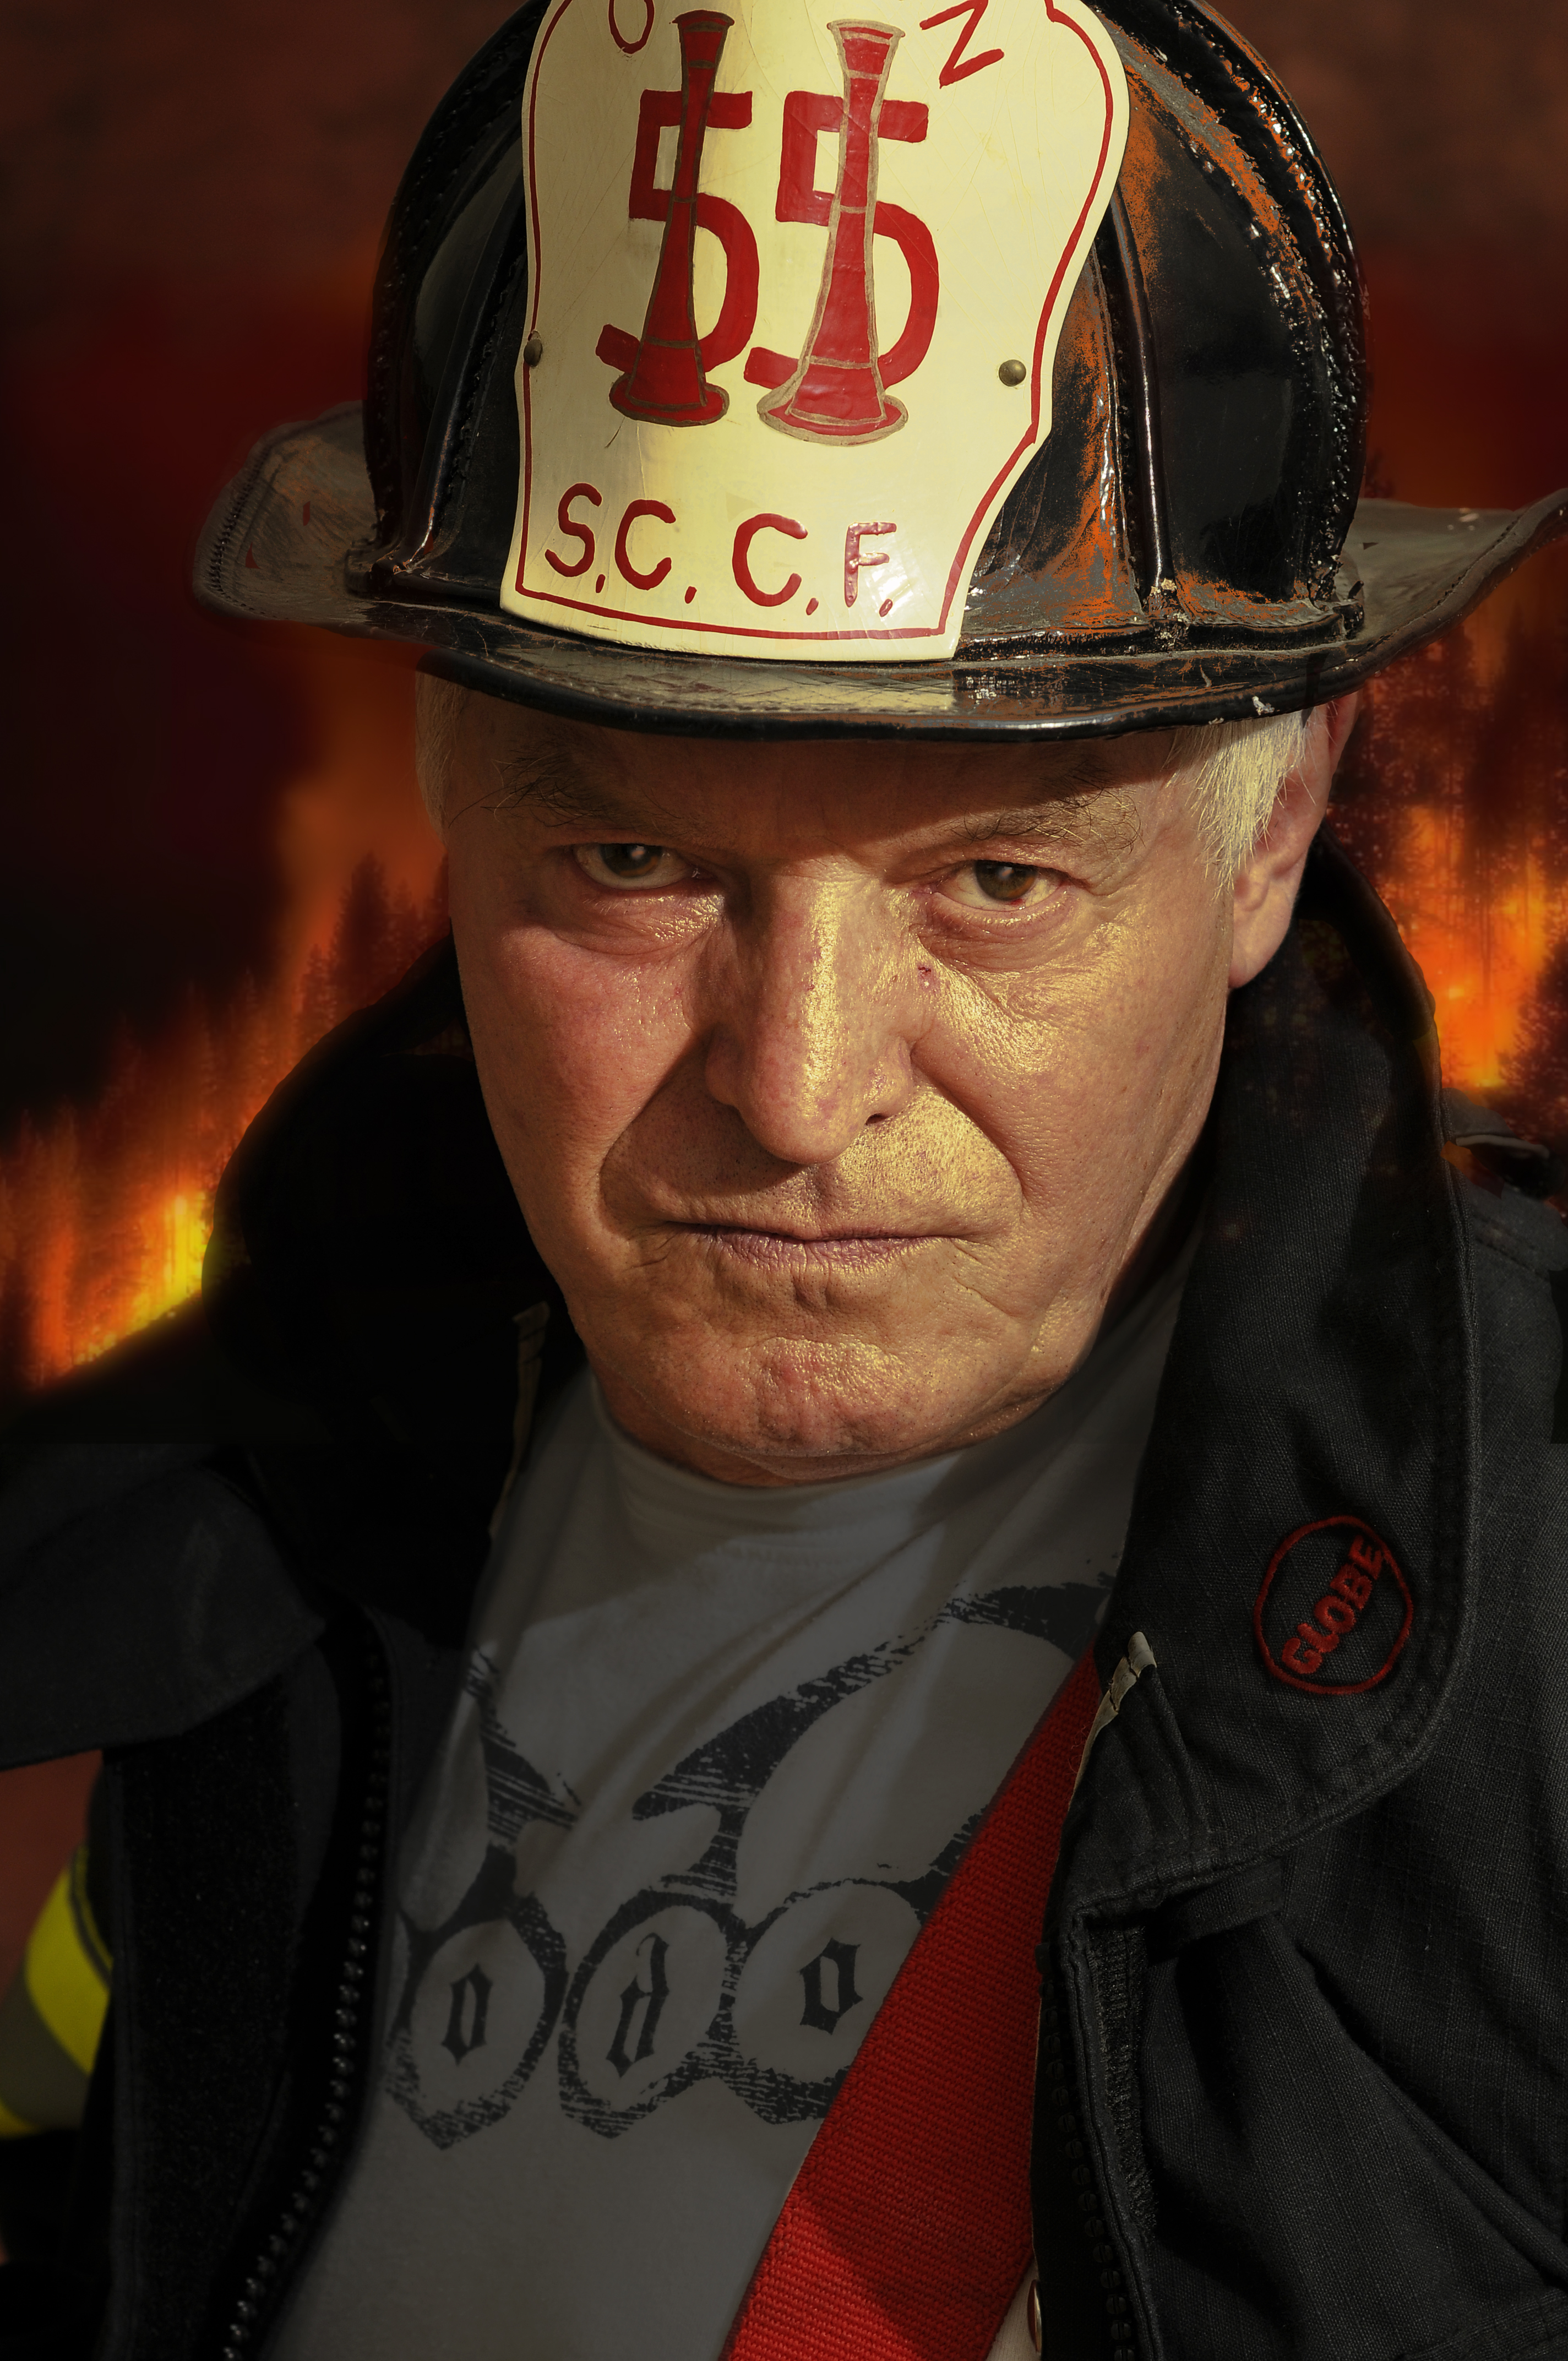 _d301897-fire-chief-at-scene